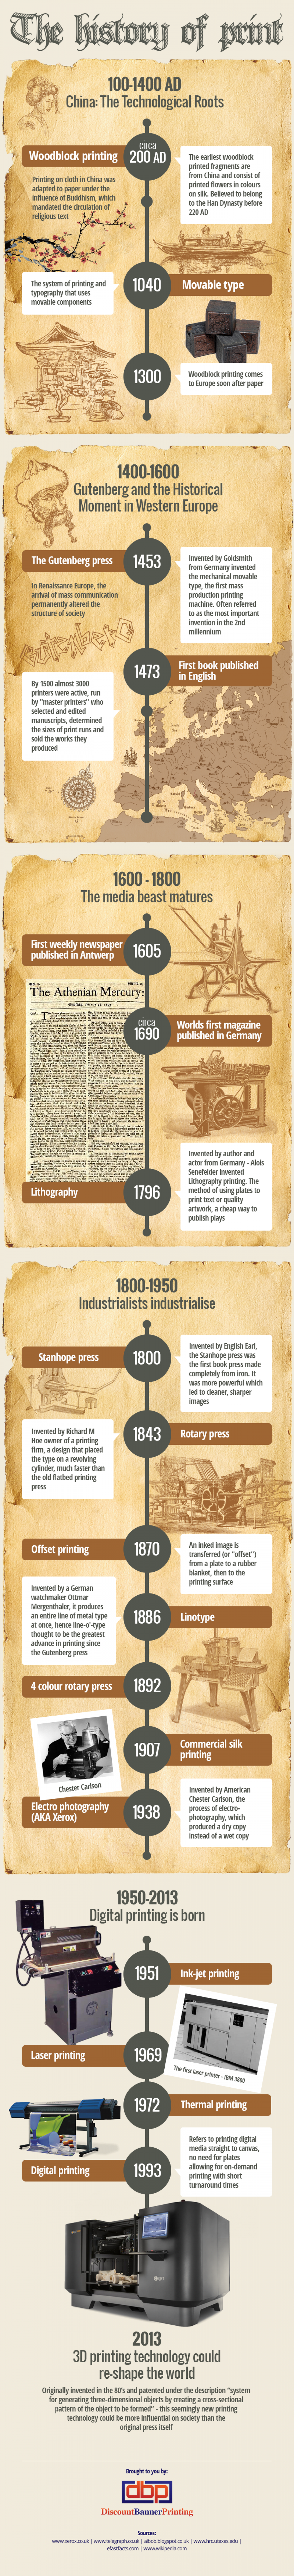 The History of Print Infographic